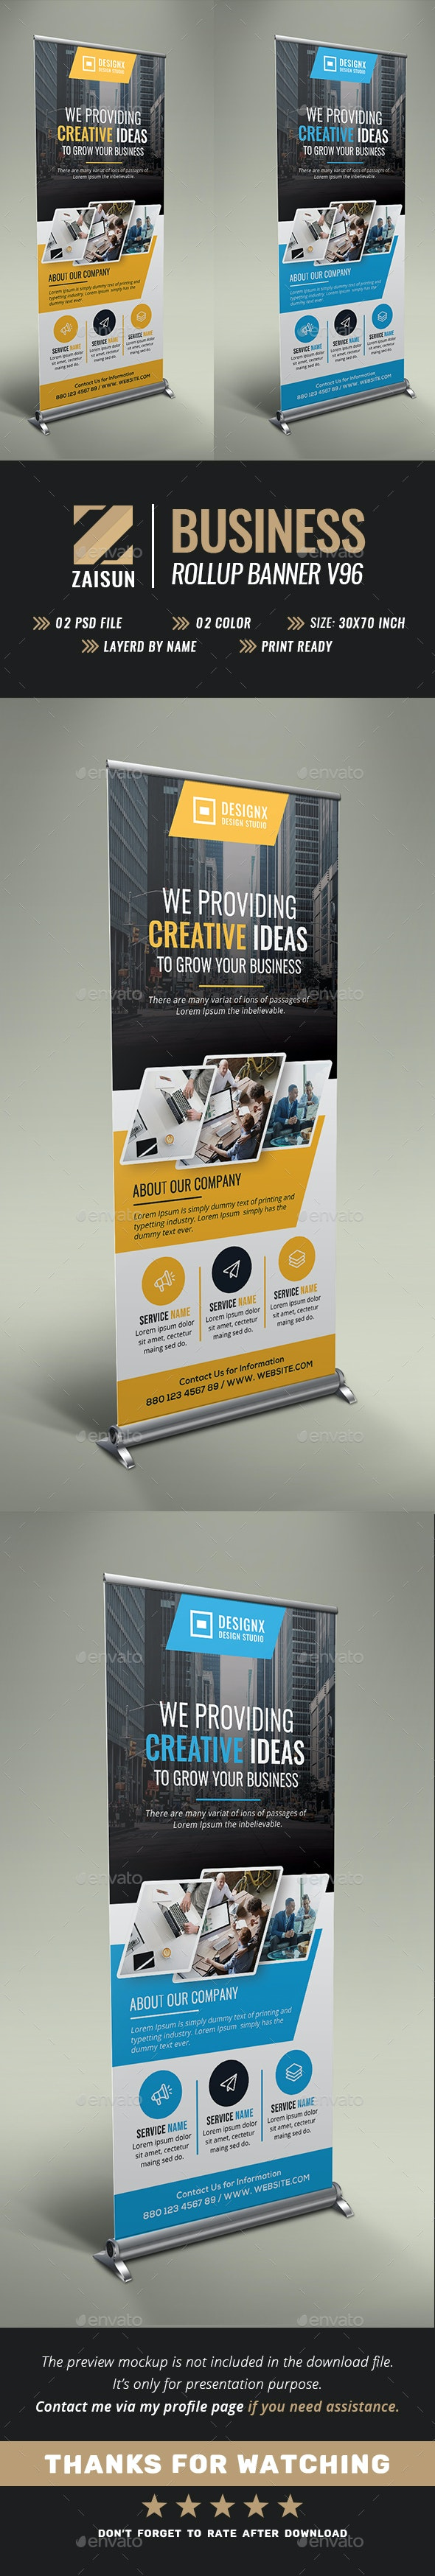 Business Roll Up Banner V96 - Signage Print Templates